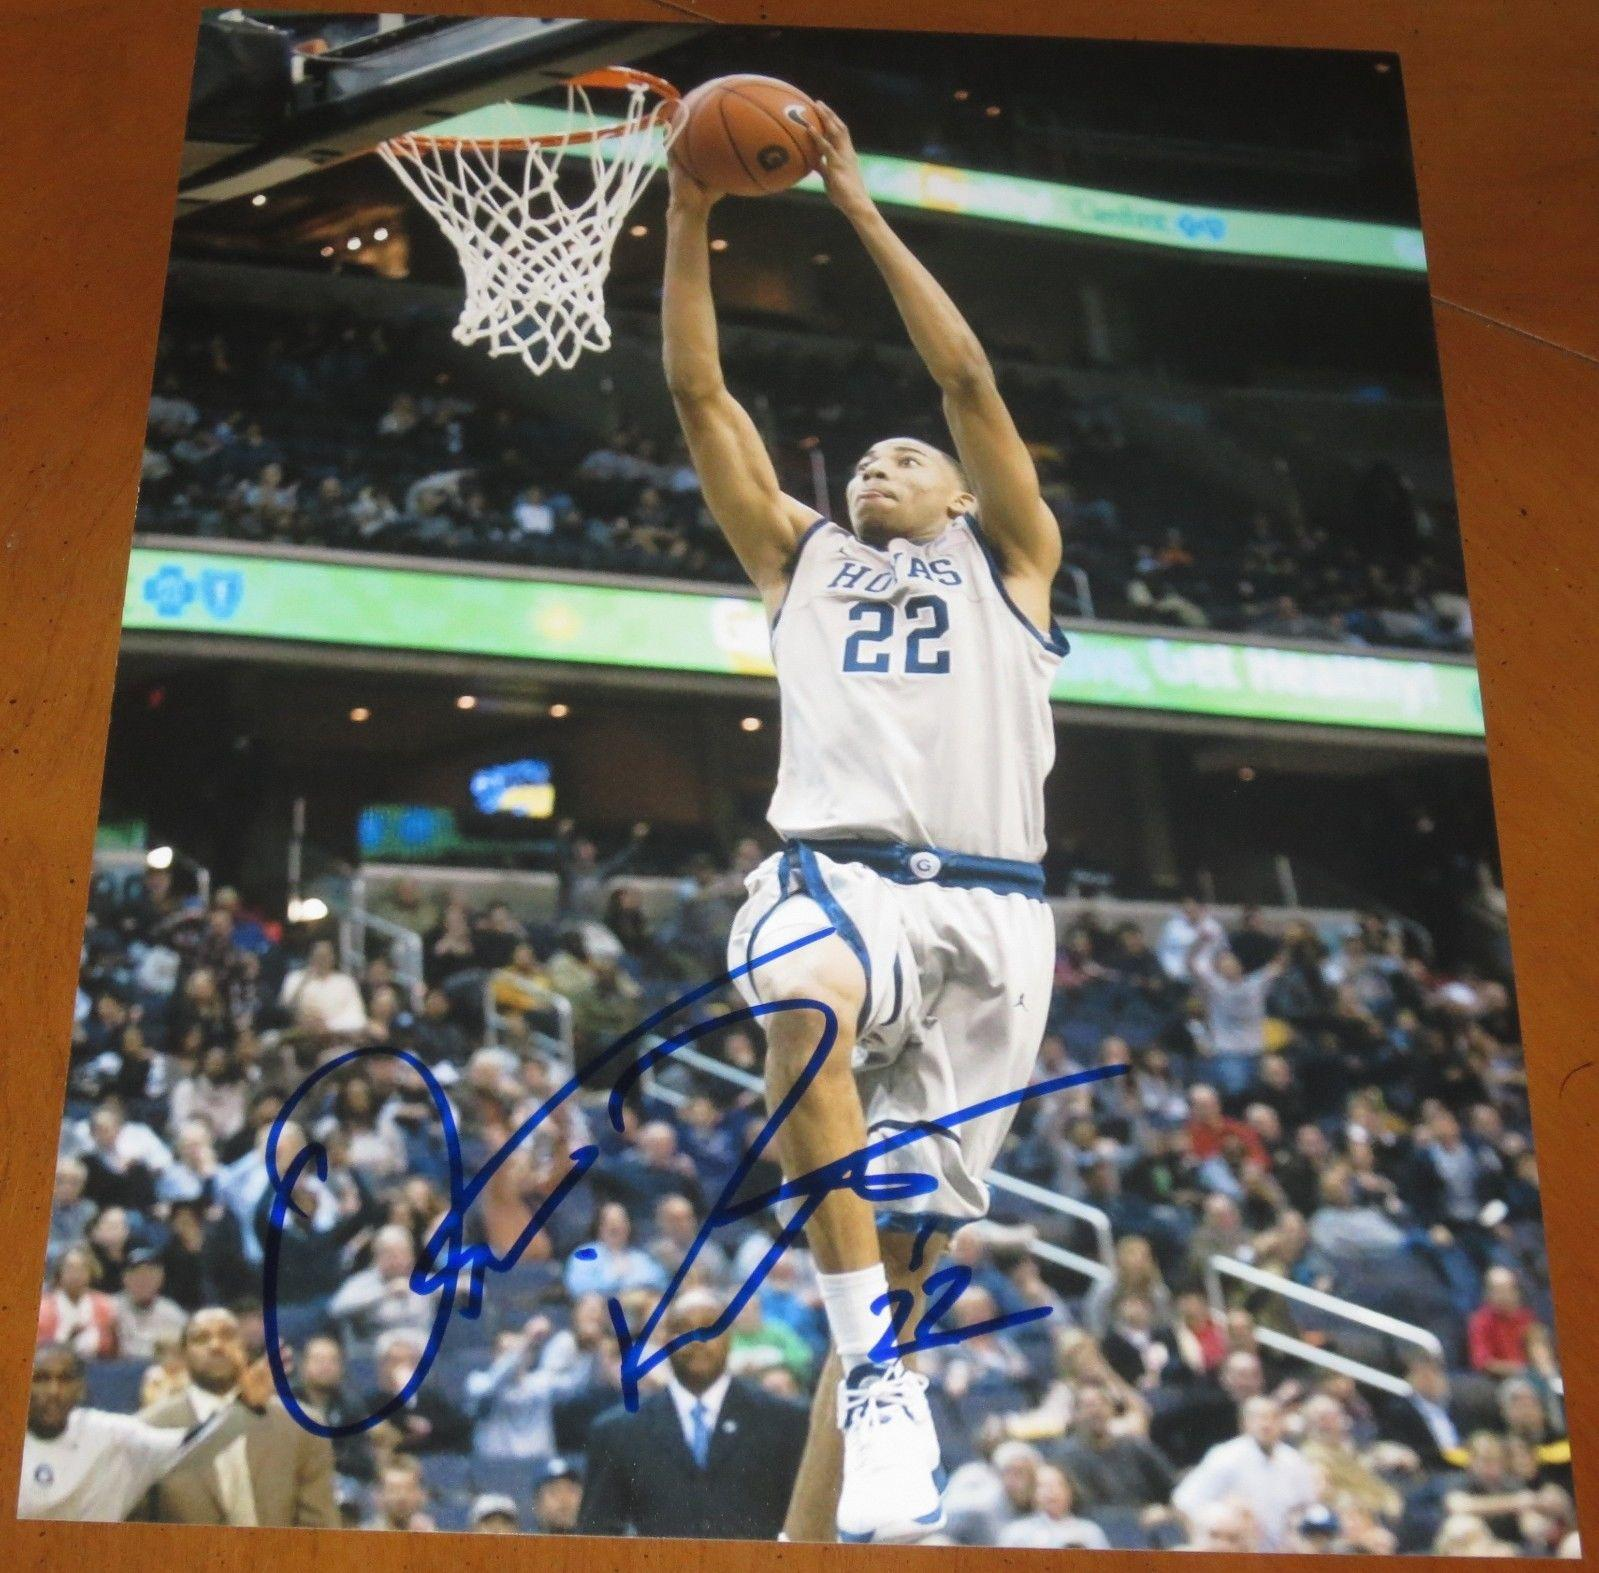 Otto Porter Signed Photograph - 11x14 Authentic Autograph Georgetown